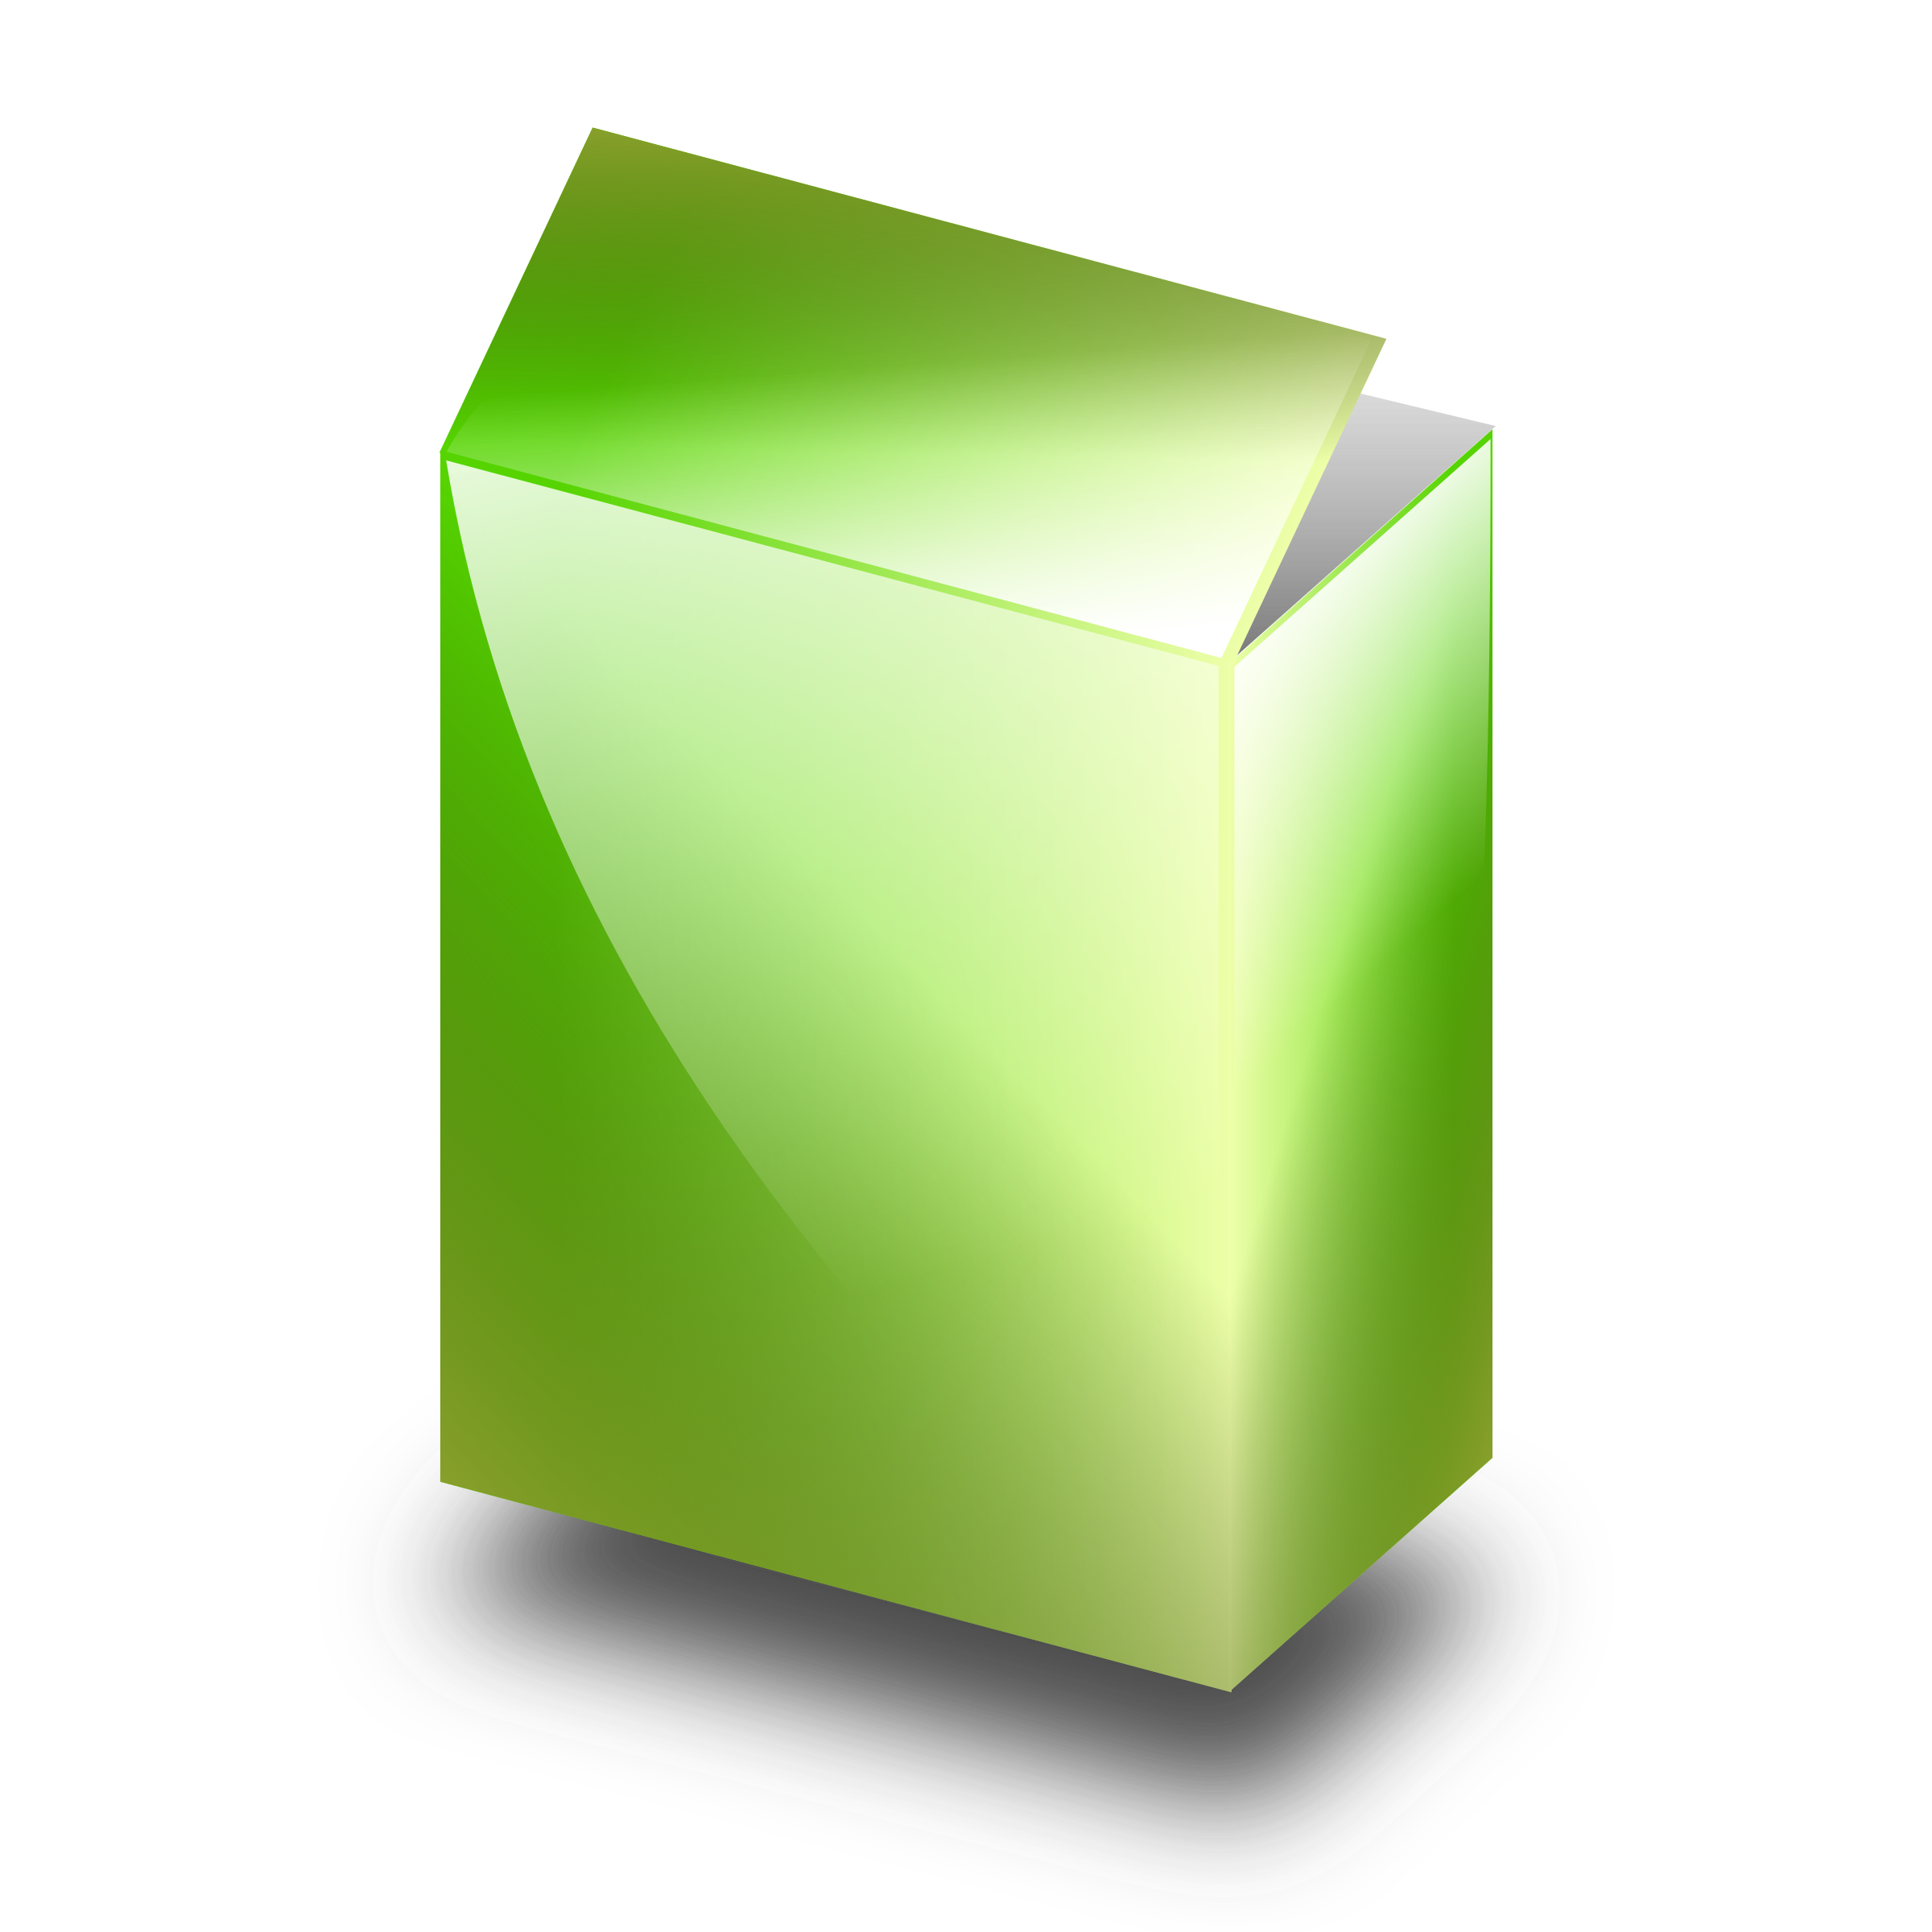 Green Box by ronoaldo